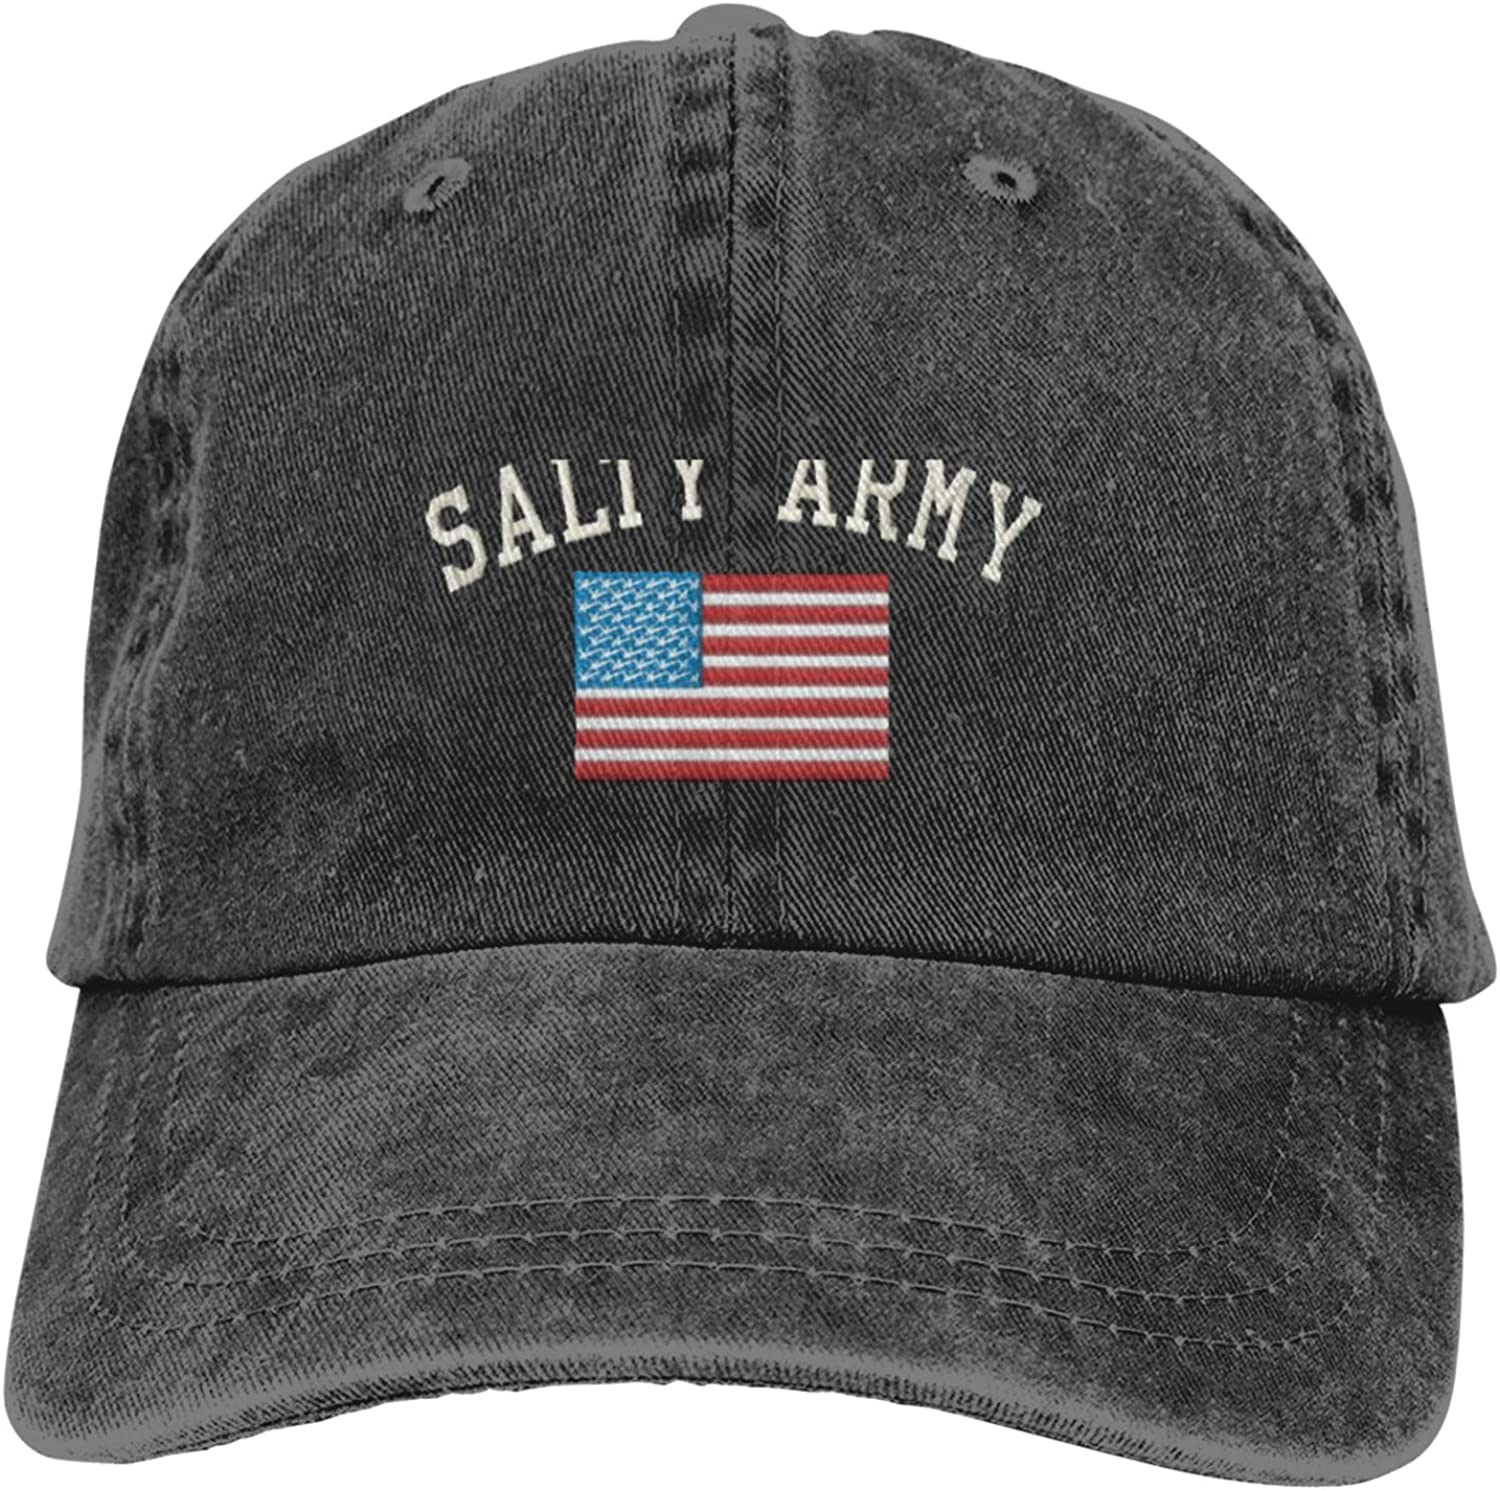 EHECD Salty Army Mens Womens Baseball Cap Adult Casquette Adjustable Athletic Hat